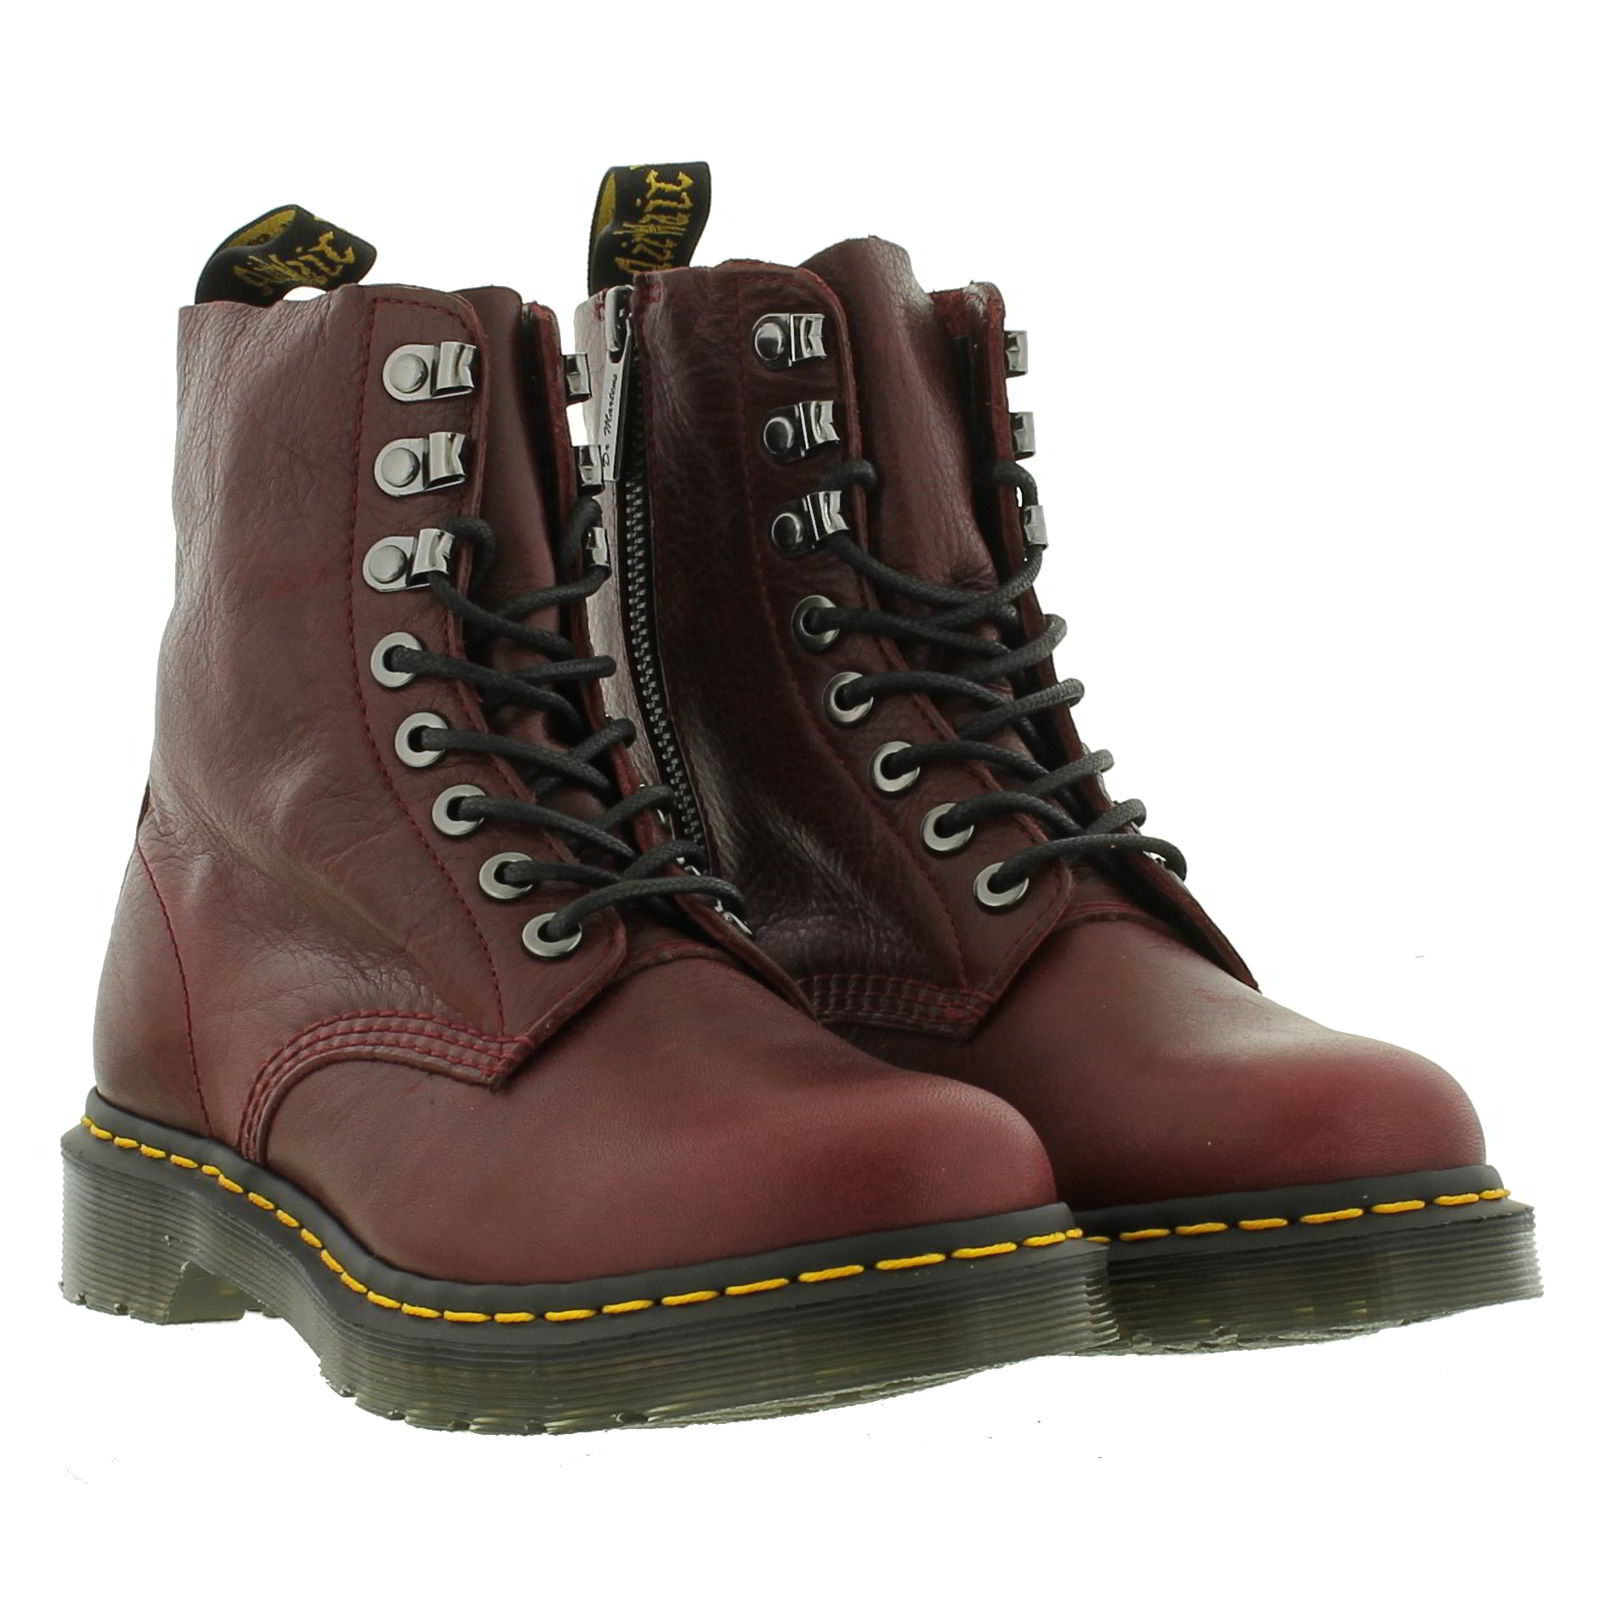 dr martens 1460 pascal pm womens soft leather 8 eye ankle boots size 4. Black Bedroom Furniture Sets. Home Design Ideas